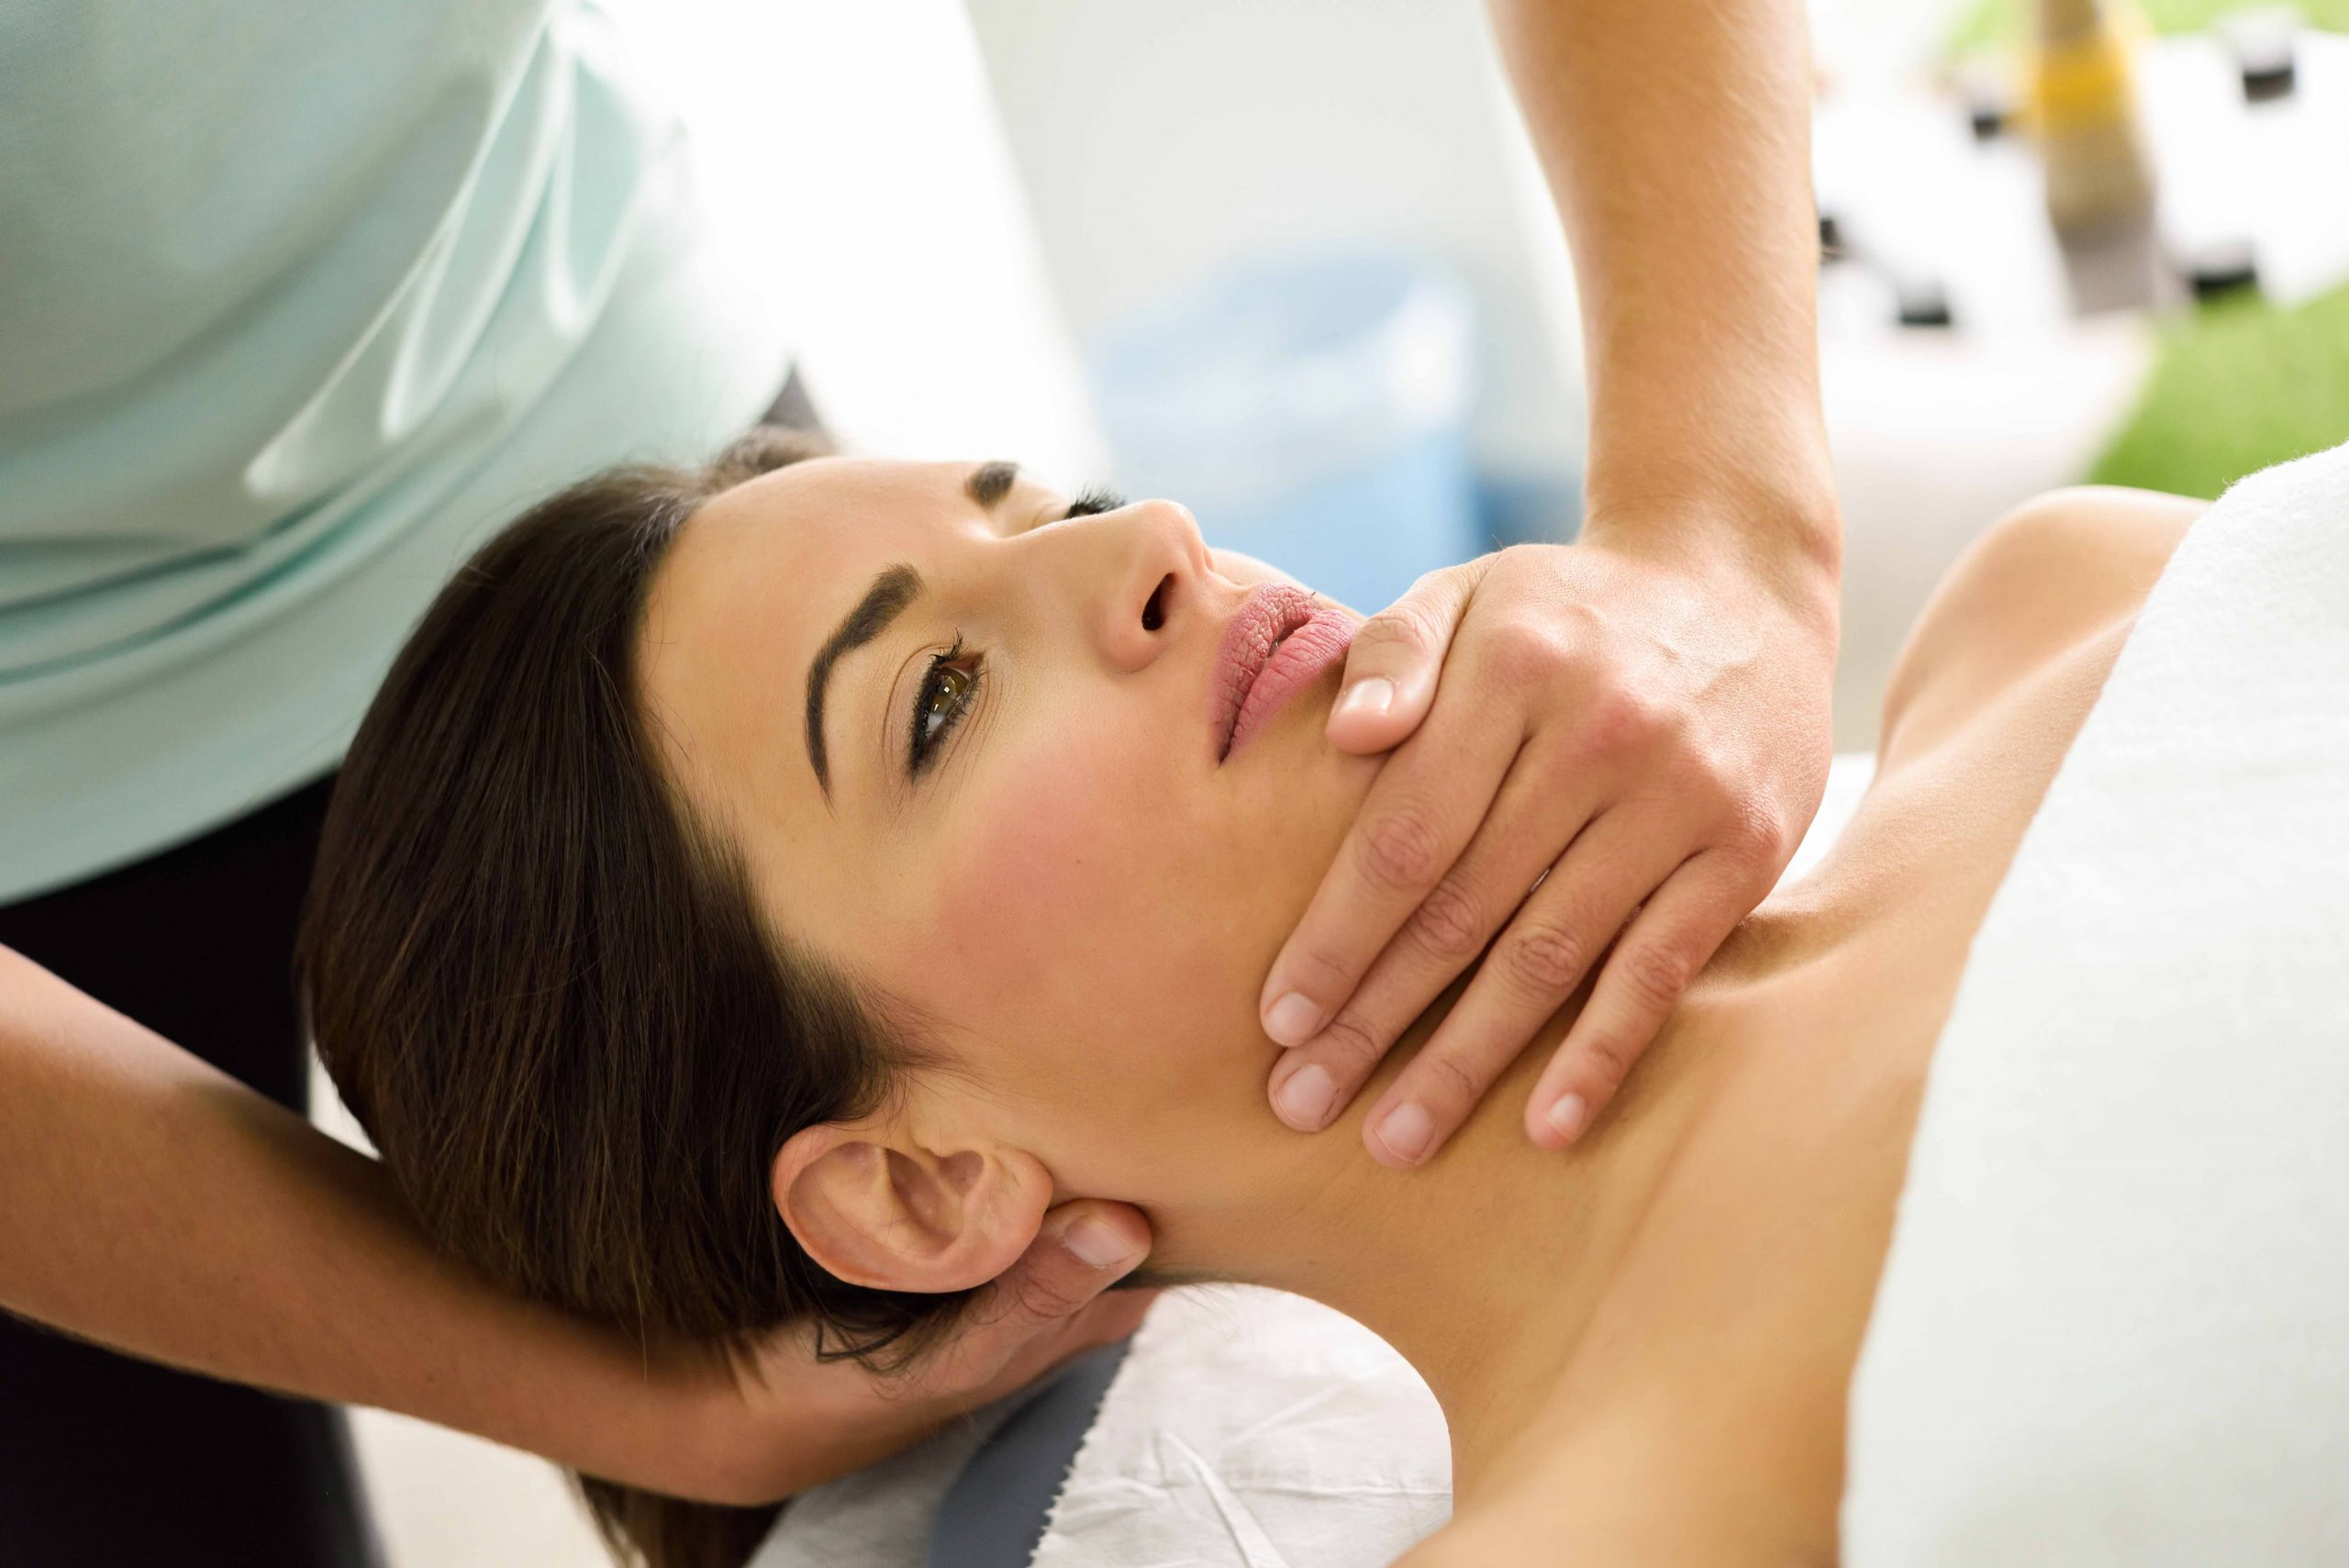 Young caucasian woman receiving a head massage in a spa center. Female patient is receiving treatment by professional therapist.